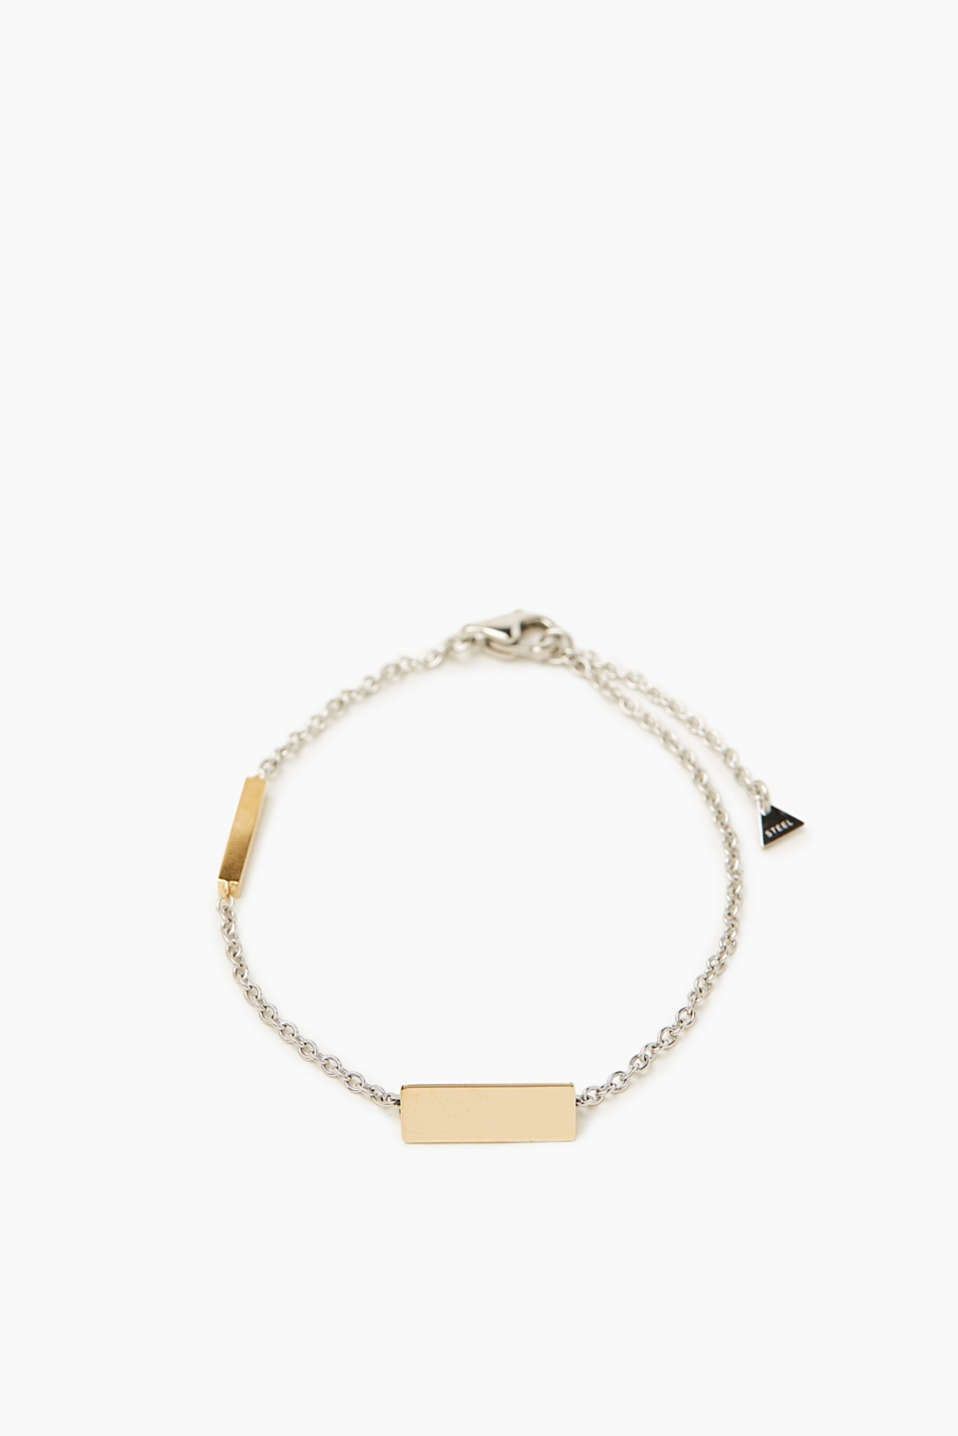 A fine bracelet with a geometric twist! The gold-plated triangular pendant rounds off this modern design.